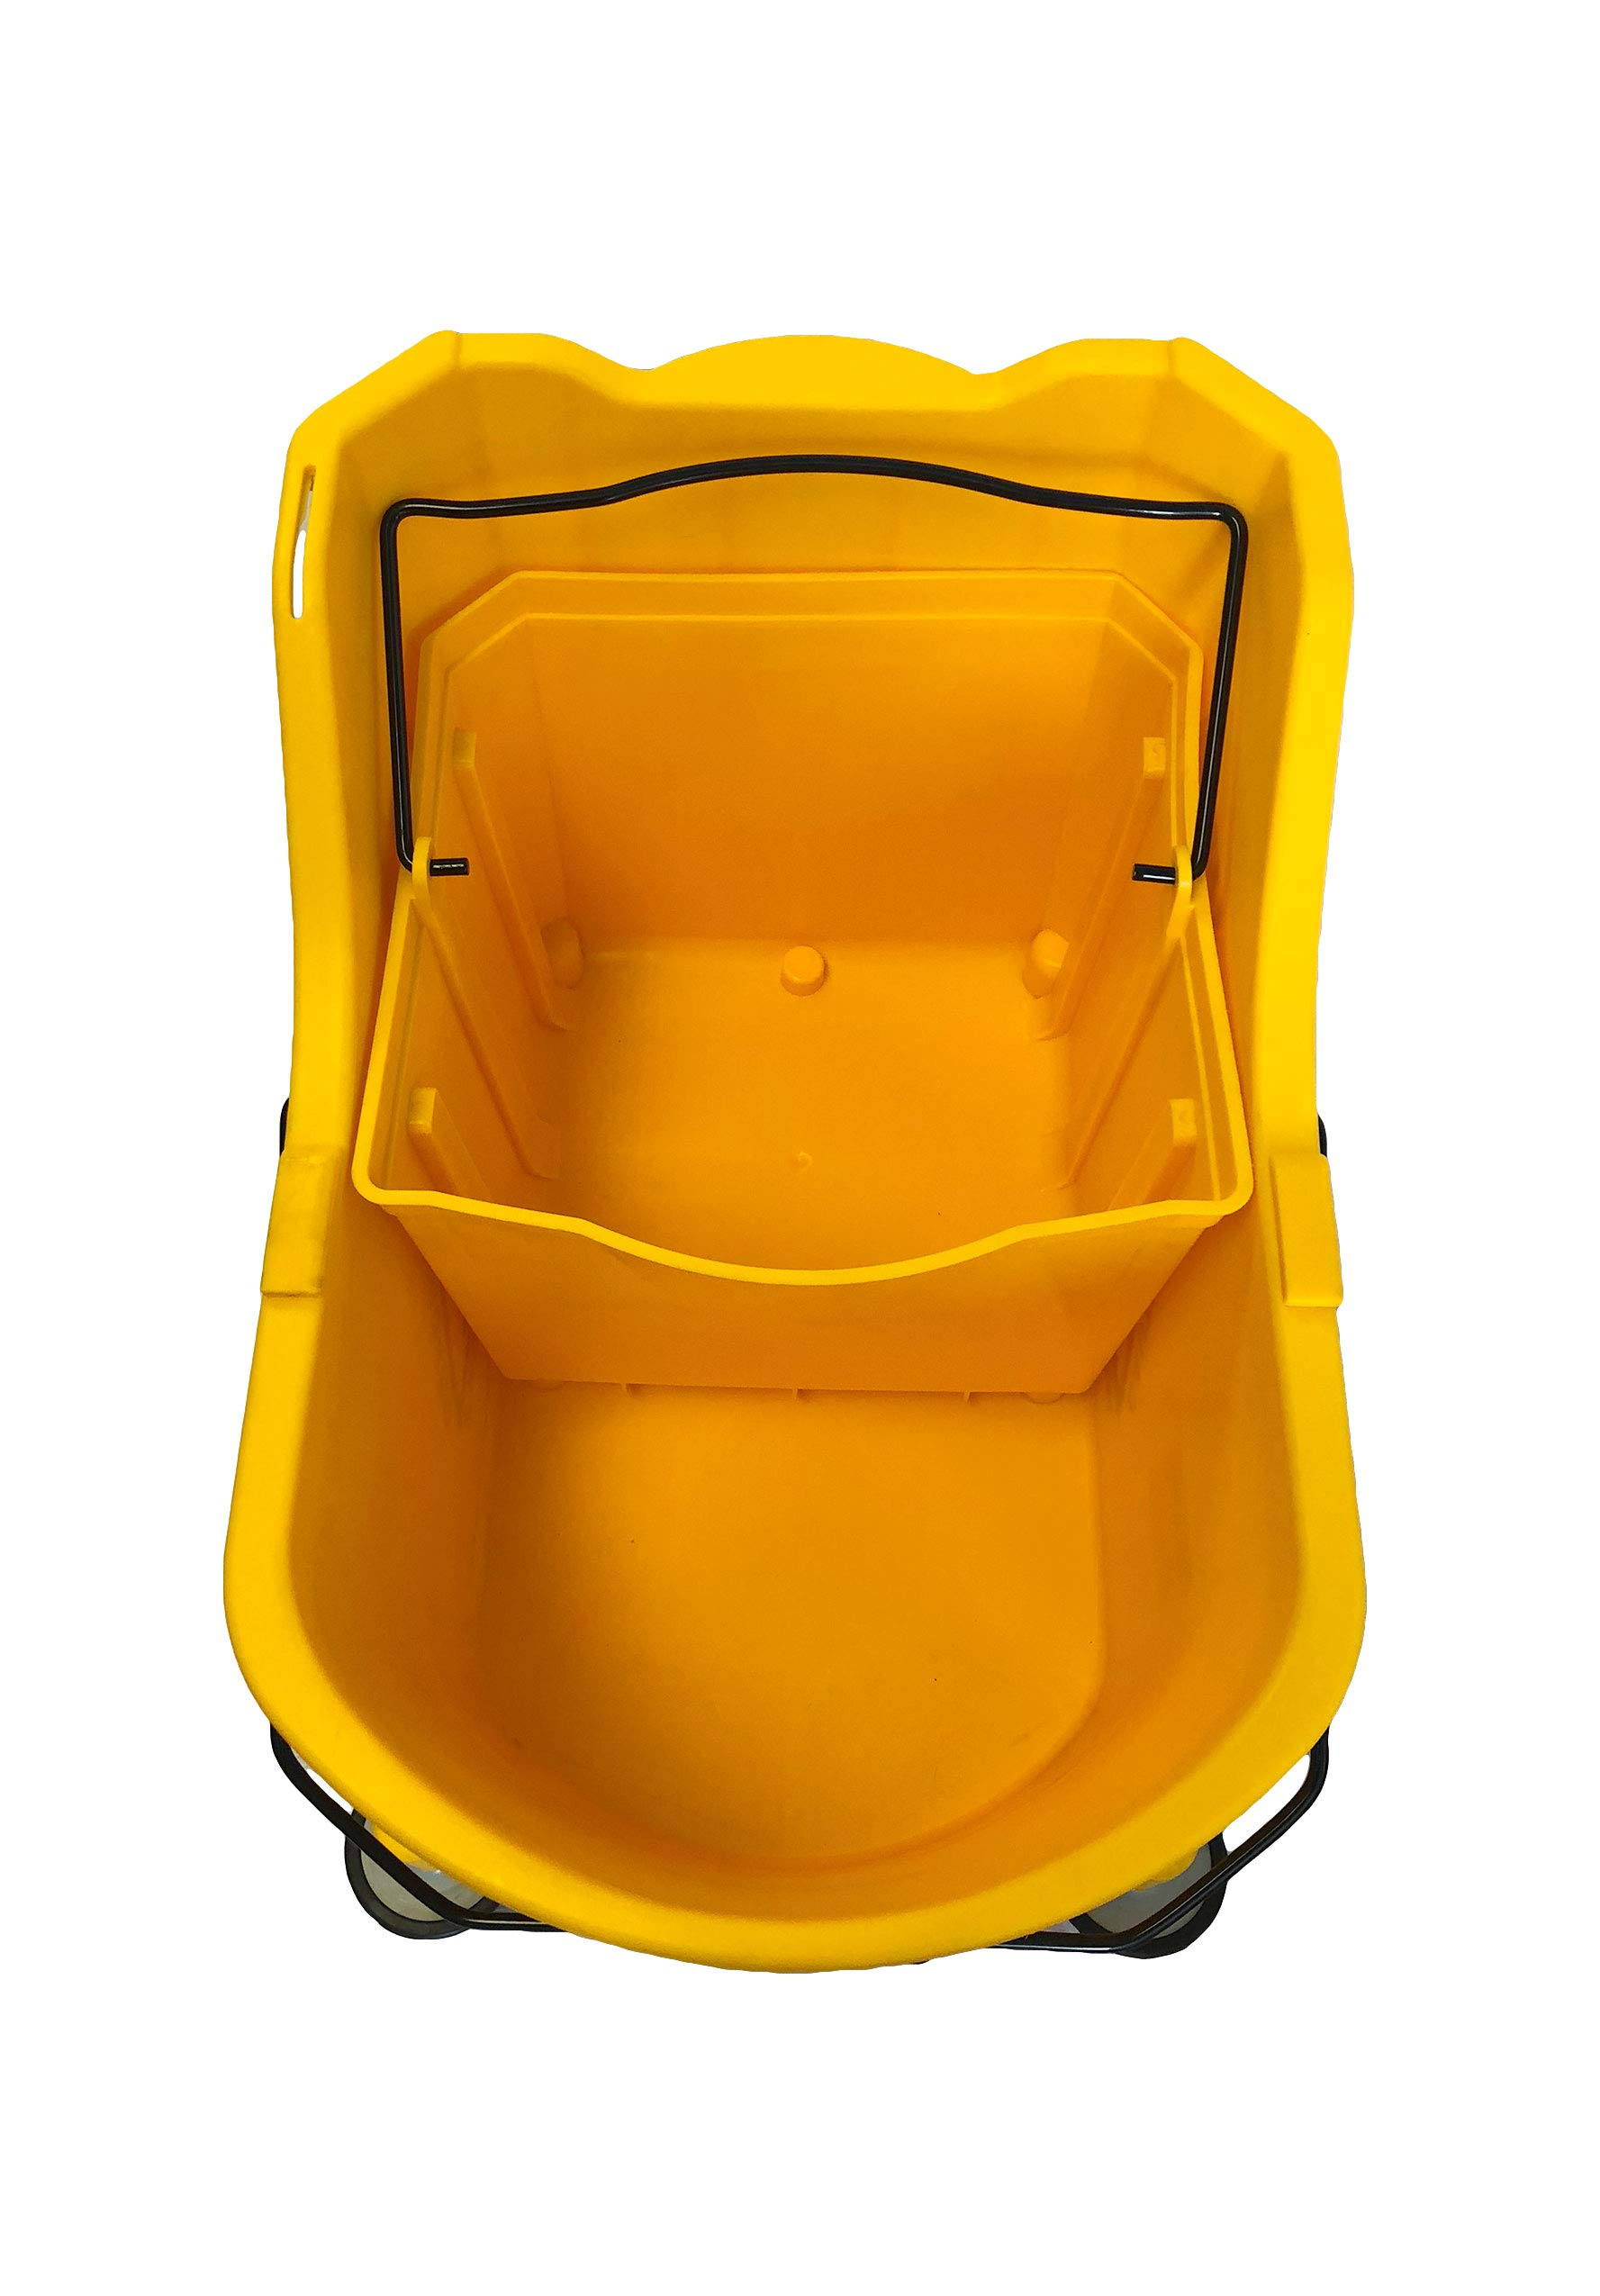 Hero EZ-LIFT Dual Cavity Commercial Mop Bucket with Wringer on Wheels, includes Dirty Water Bucket (36-Quart   9 Gallon Cleaning Bucket) by HERO IMPORTS (Image #3)